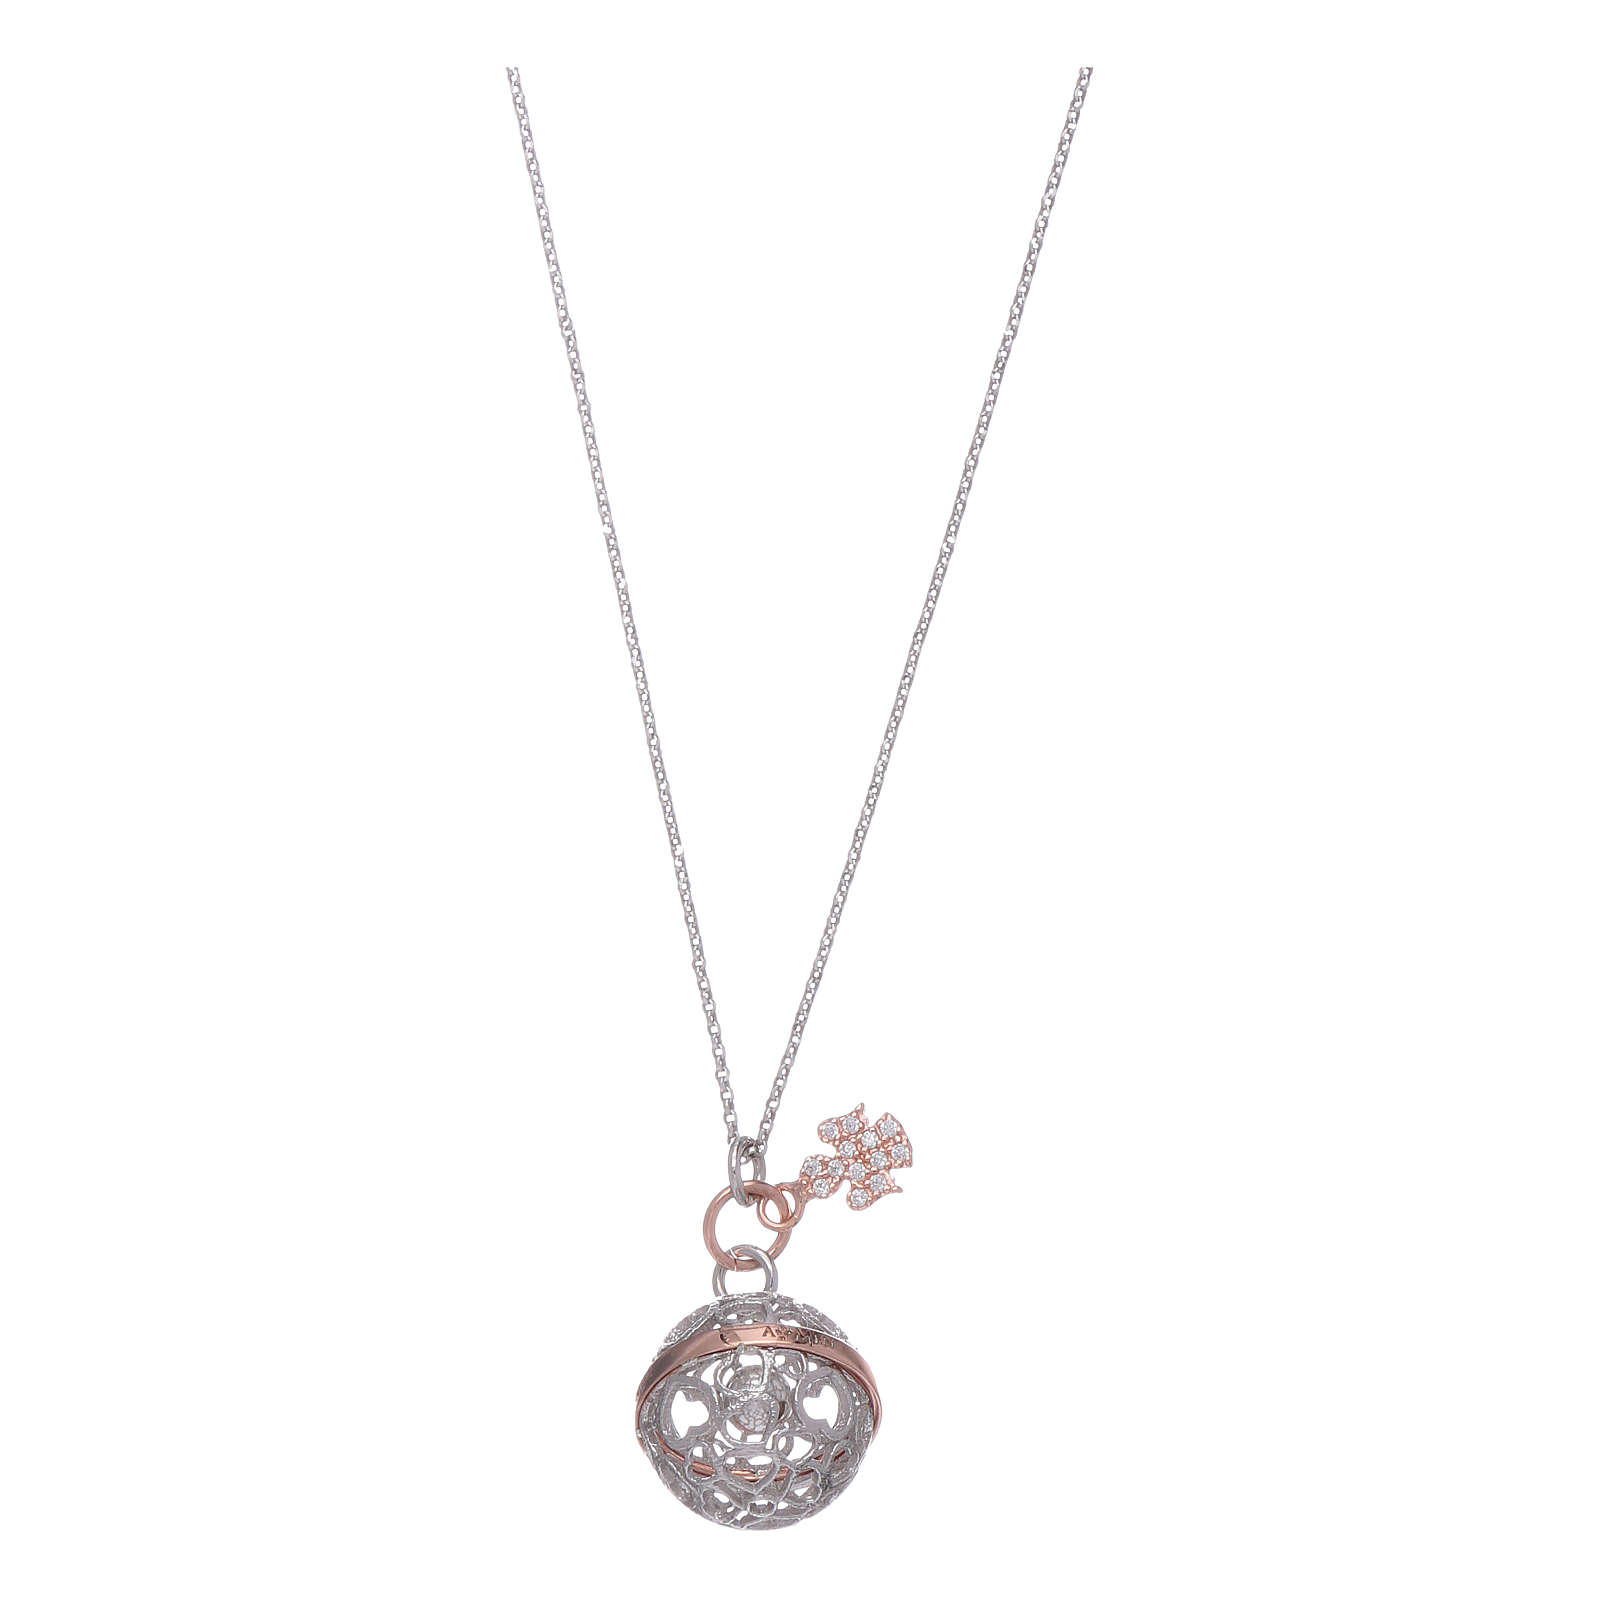 AMEN necklace in 925 sterling silver finished in rosè with white zircons 4